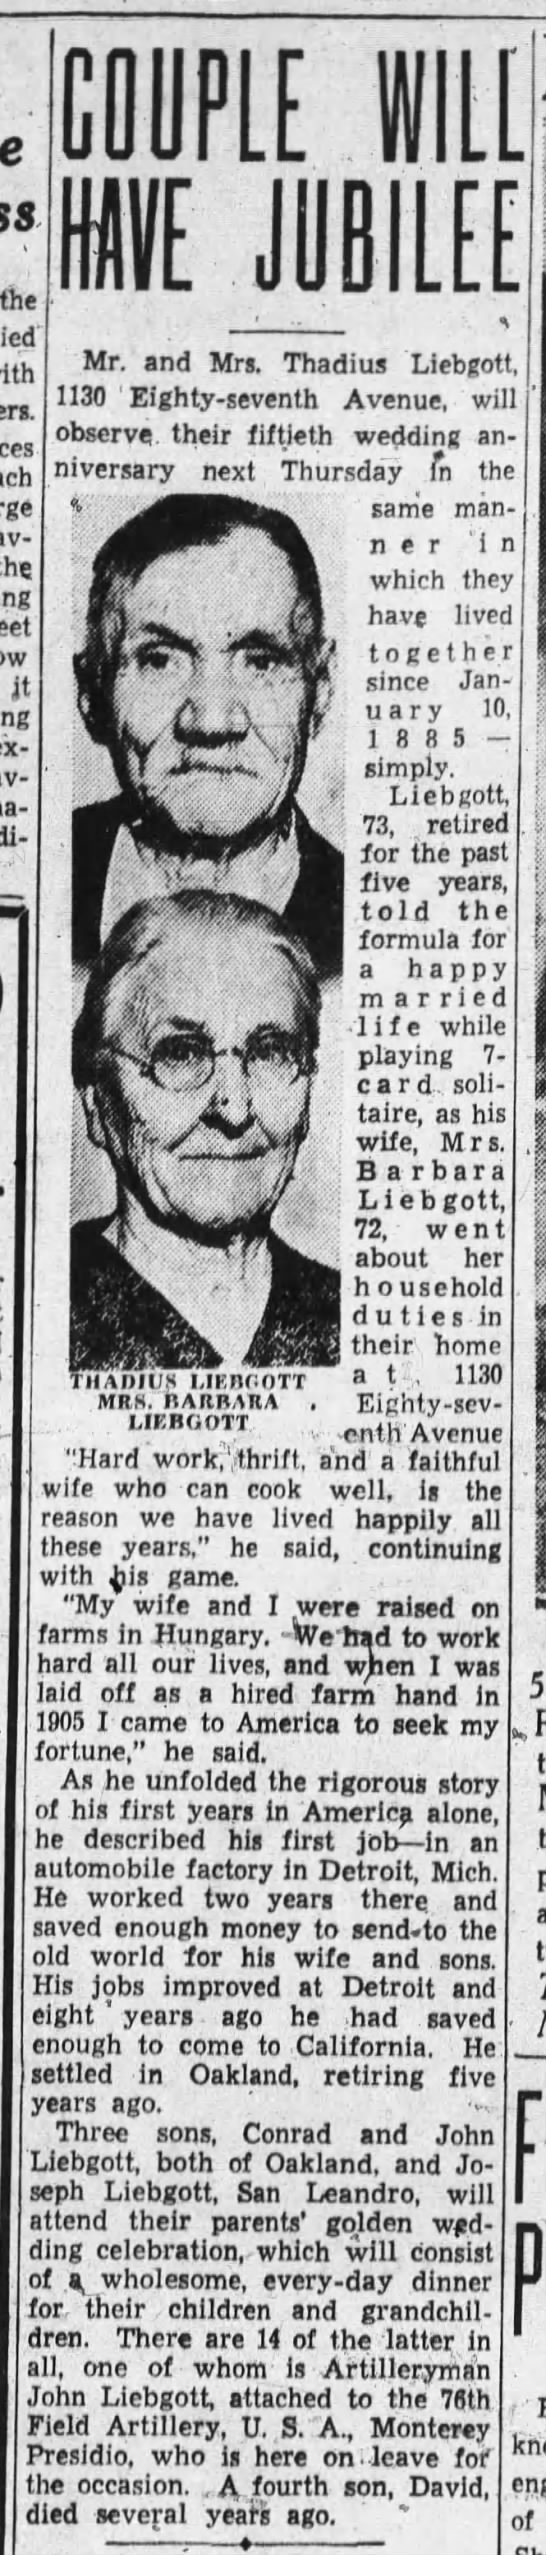 Couple will have Jubilee, Oakland Tribune (on January 6, 1935, p6) -